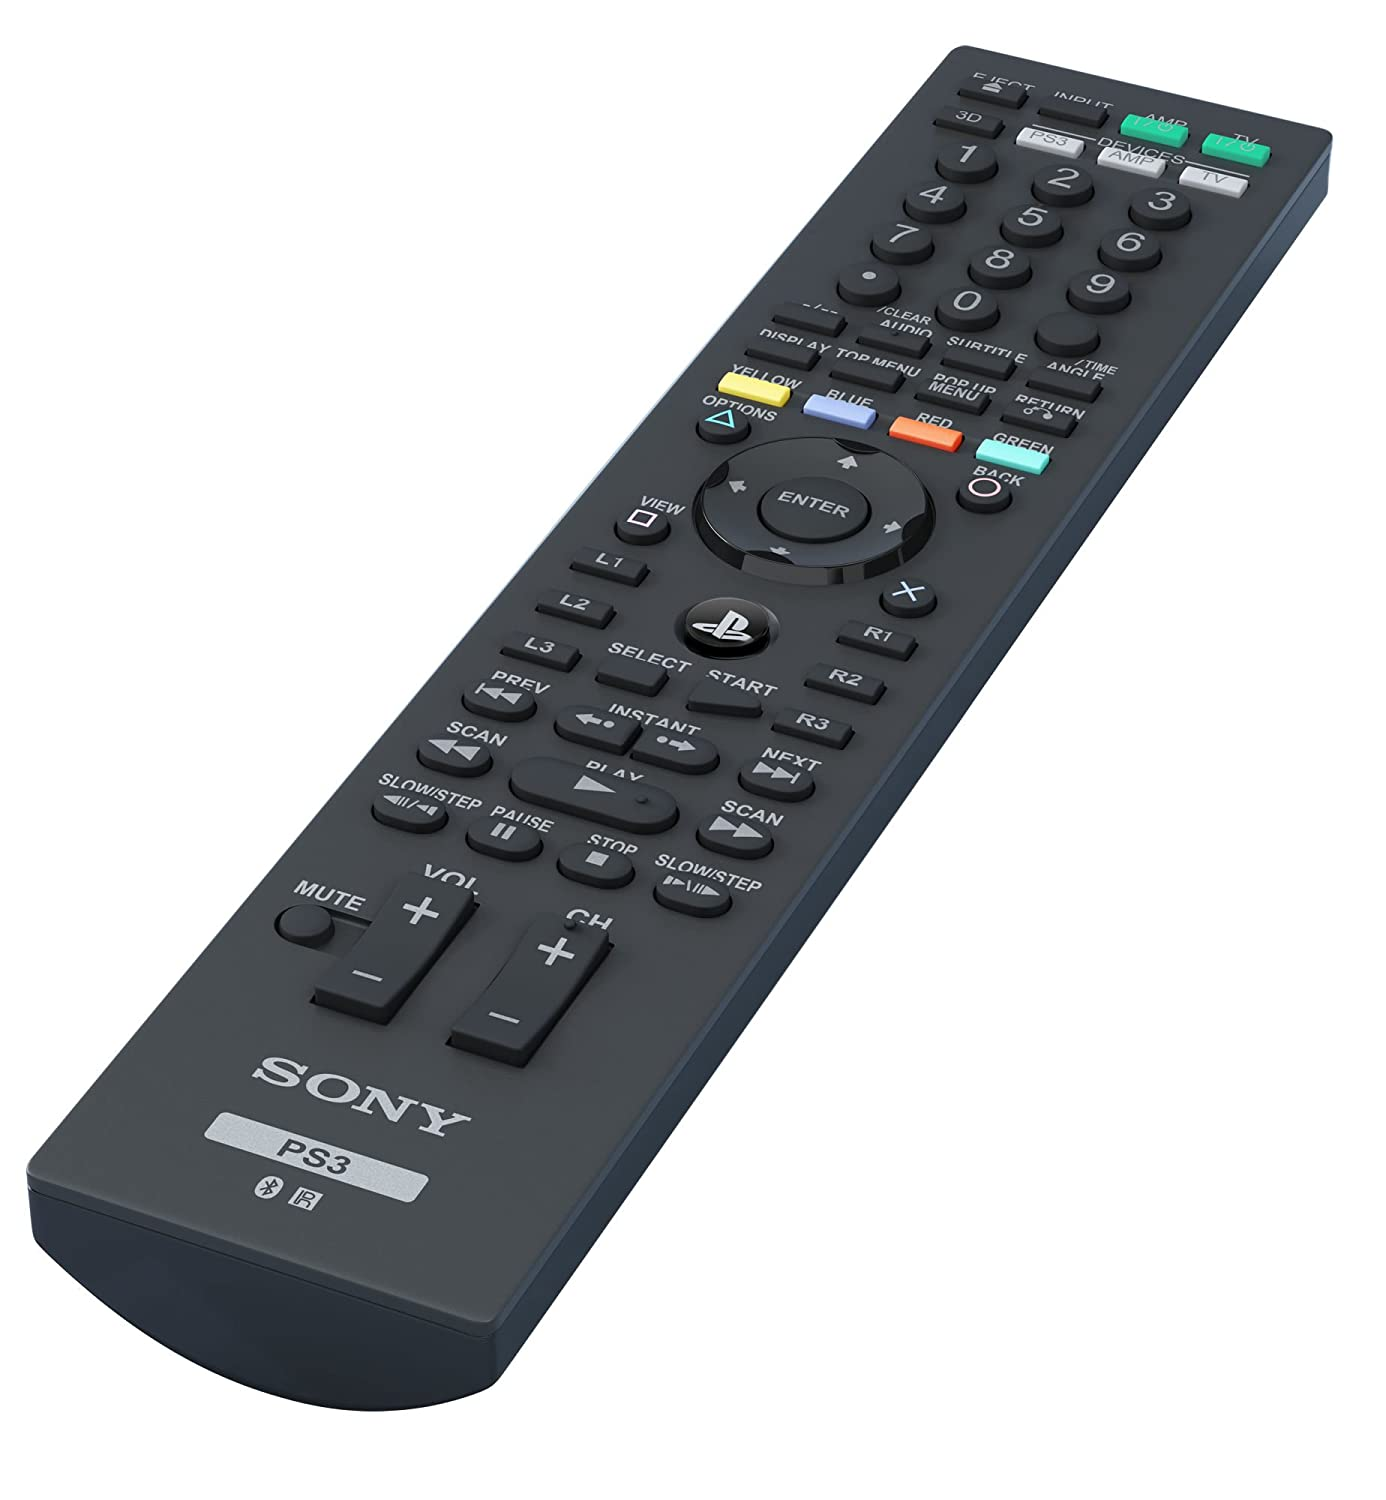 Sony PS3 Media/Blu-ray Disc Remote Control $13.98